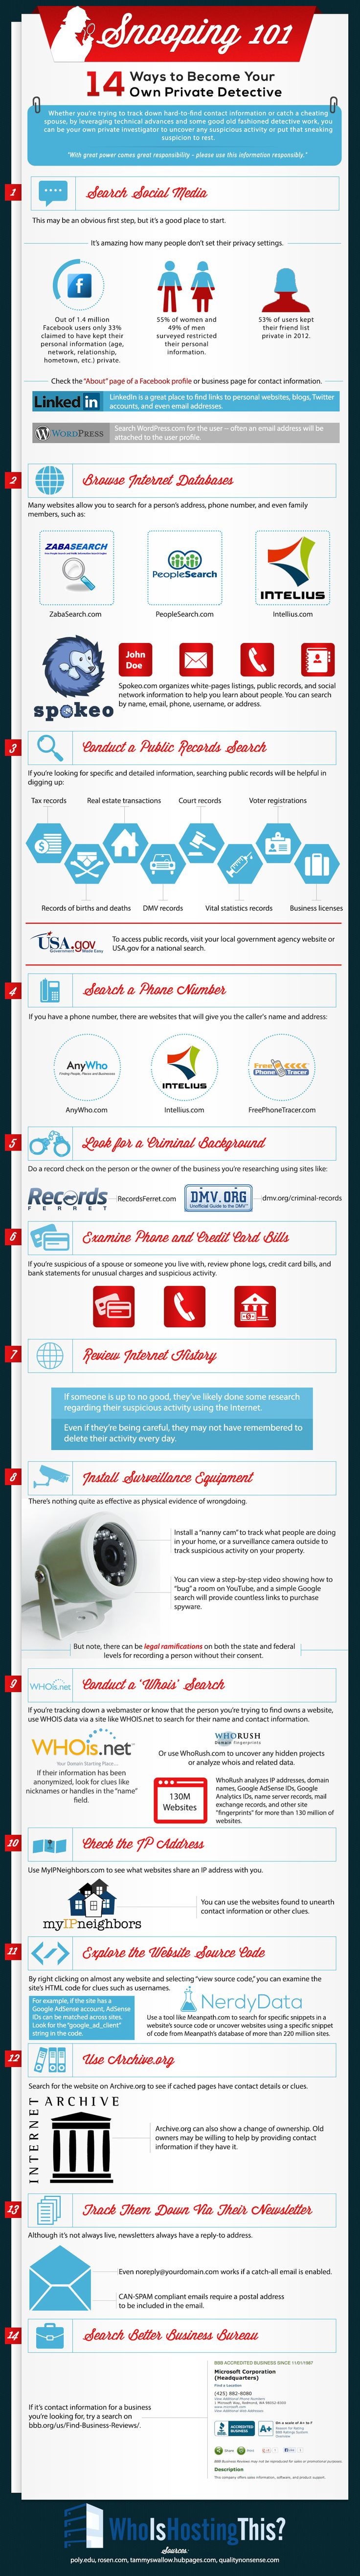 Snooping 101: How To Become Your Own Private Detective - infographic #ecommerce / www.ecommerce.org.il